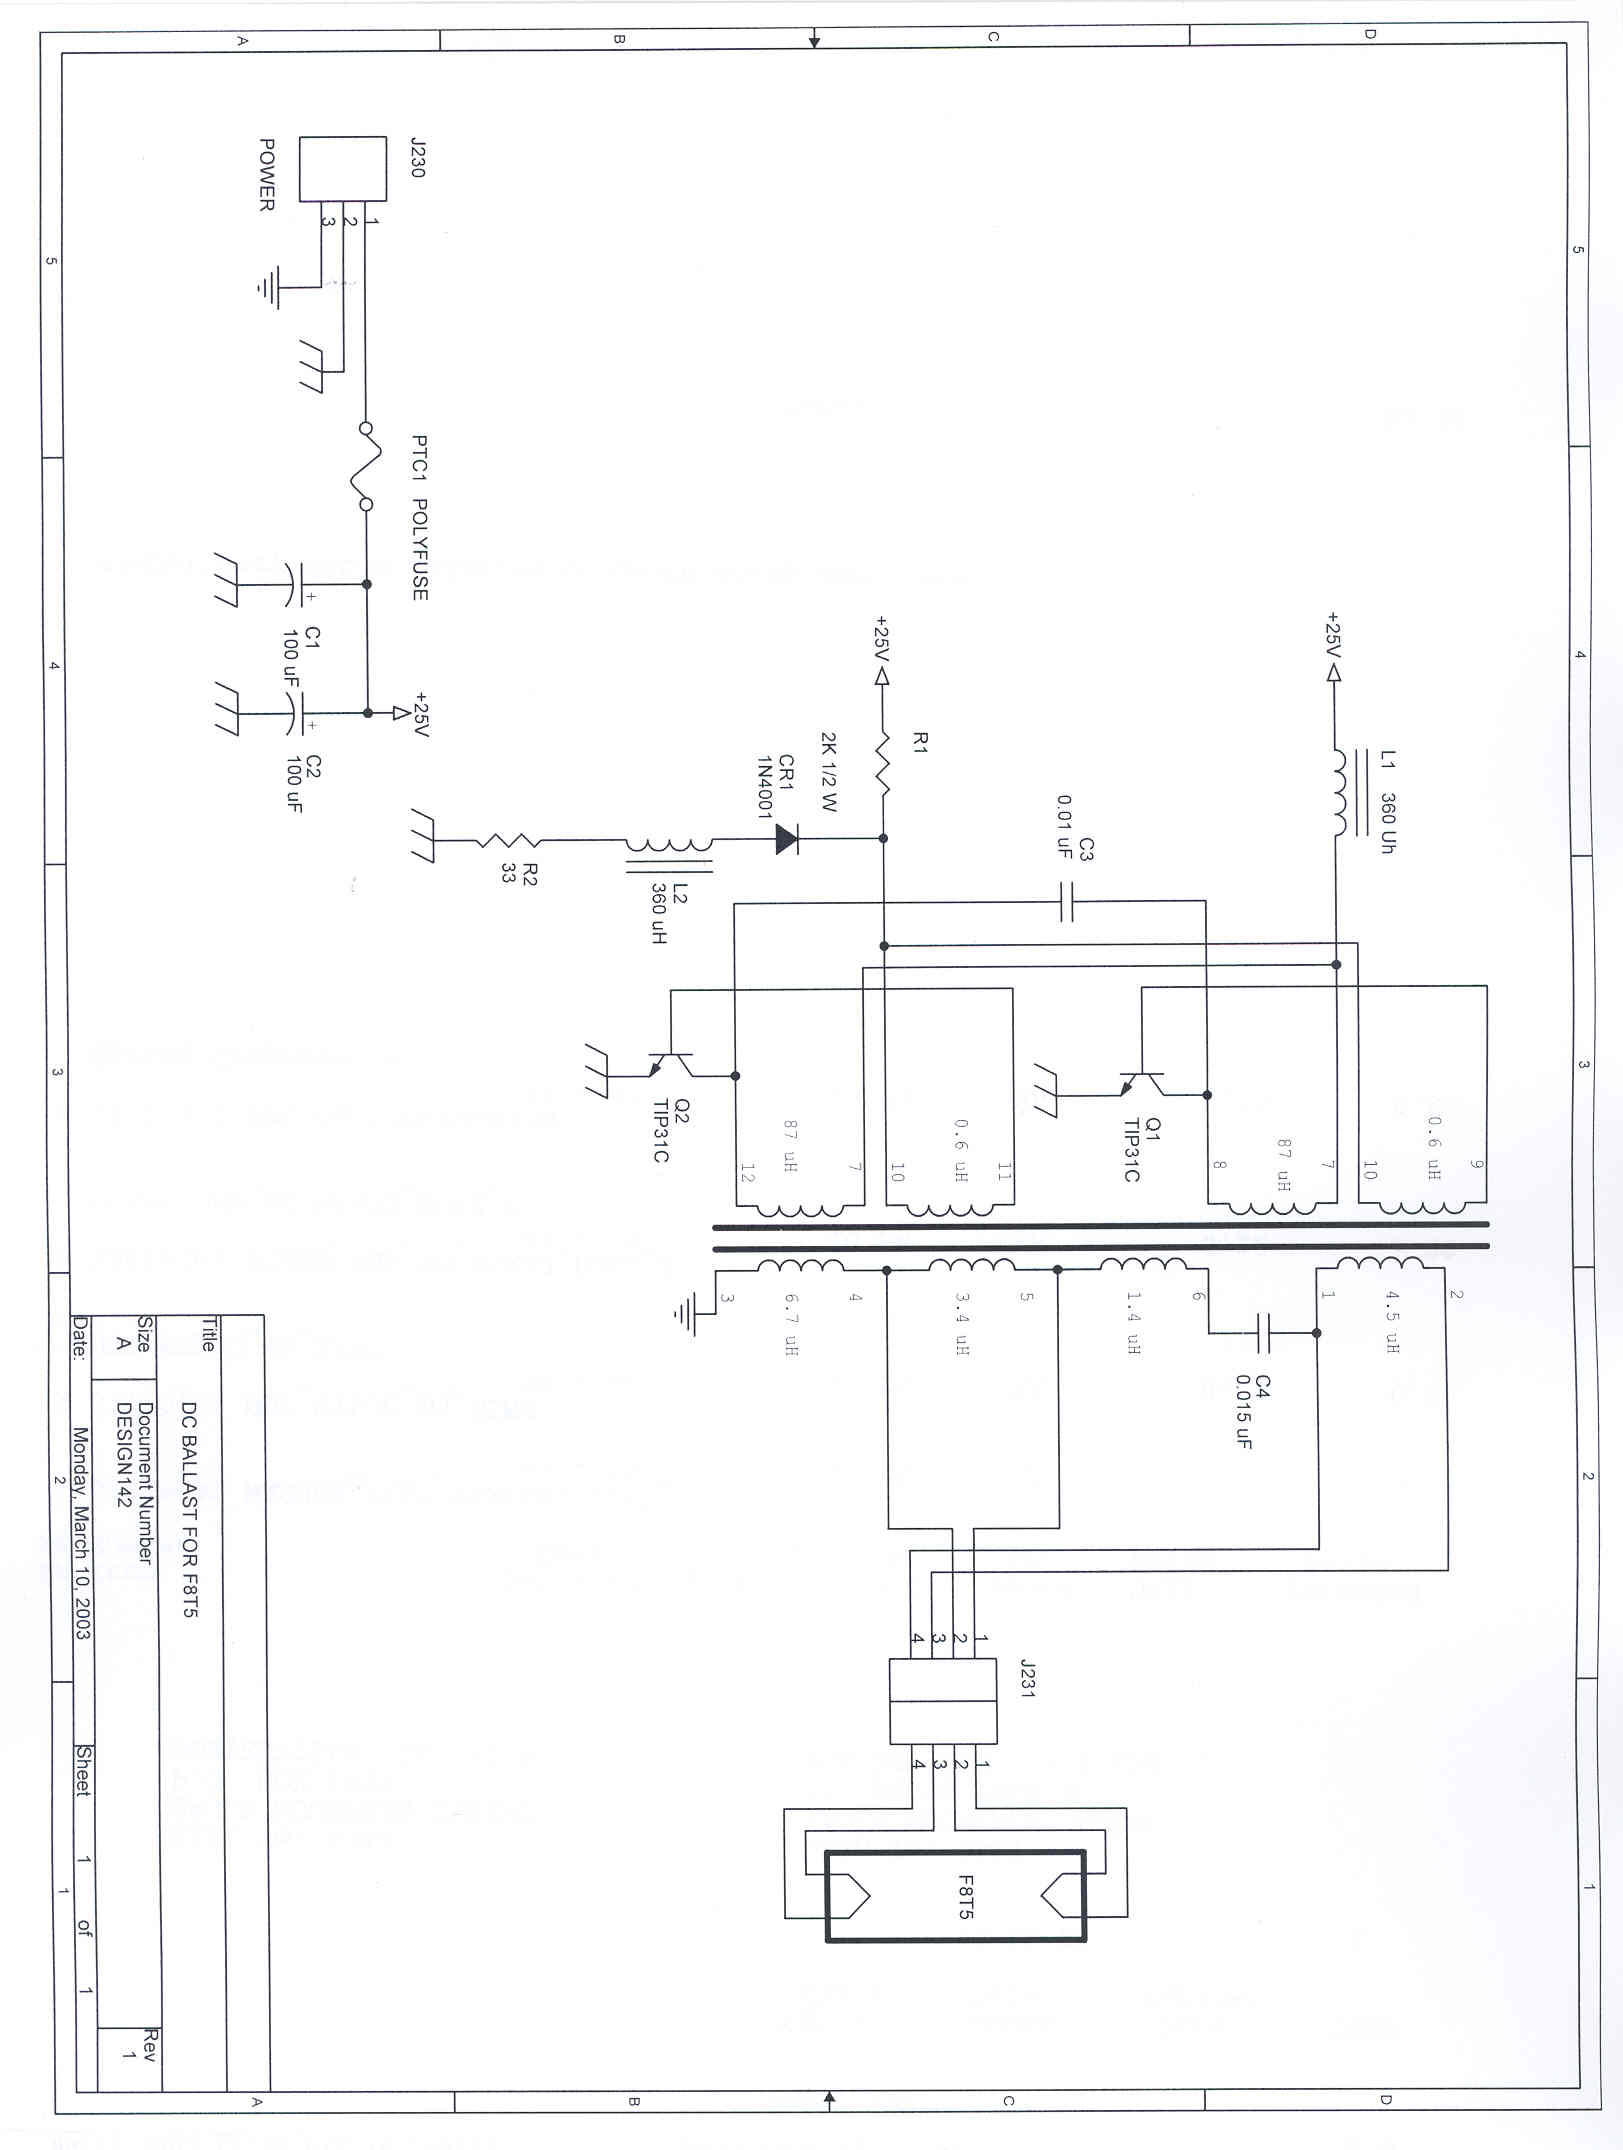 f8t5 ballast wiring diagram   27 wiring diagram images